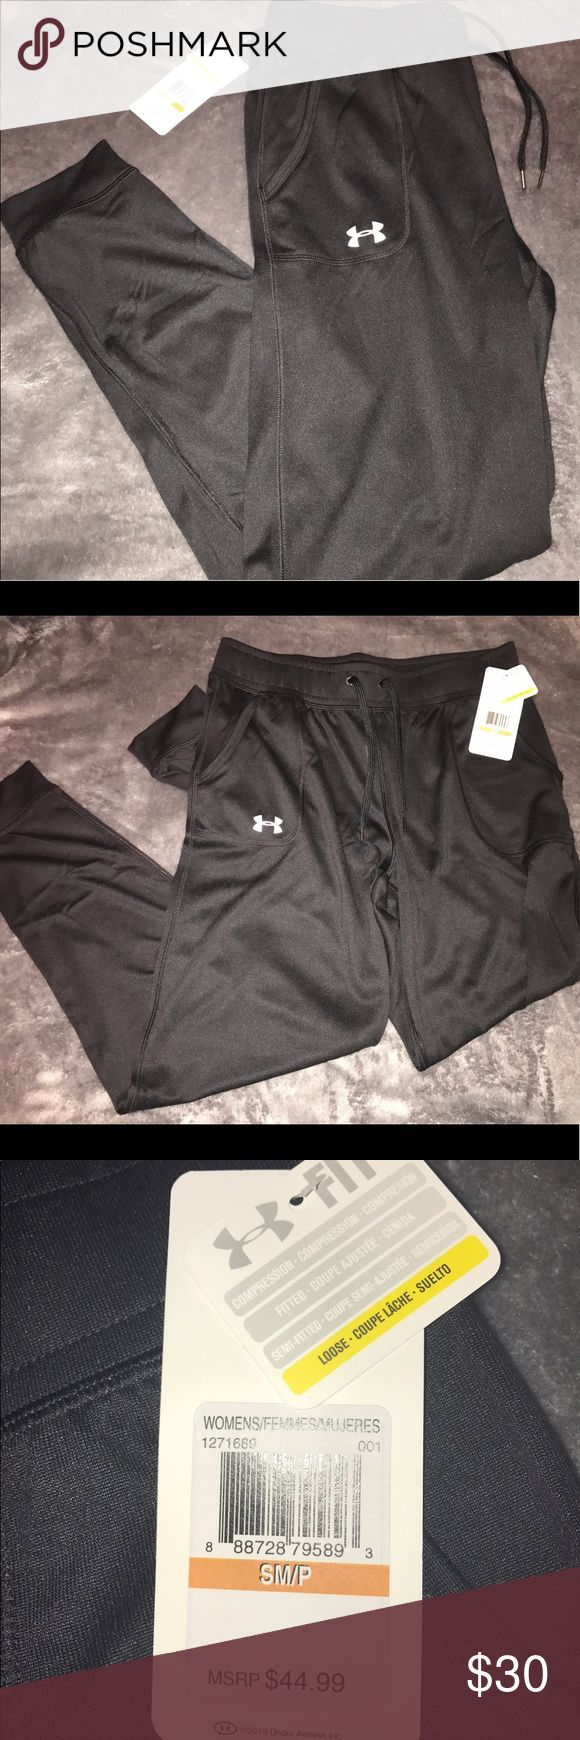 BRAND NEW Under Armor Sweatpants Black Under Armor sweatpants with pockets! They have a tie around the waist and tapered at the bottom pant leg. Dri fit material. Great sweatpants and super comfortable! 🙌🏼 Under Armour Pants